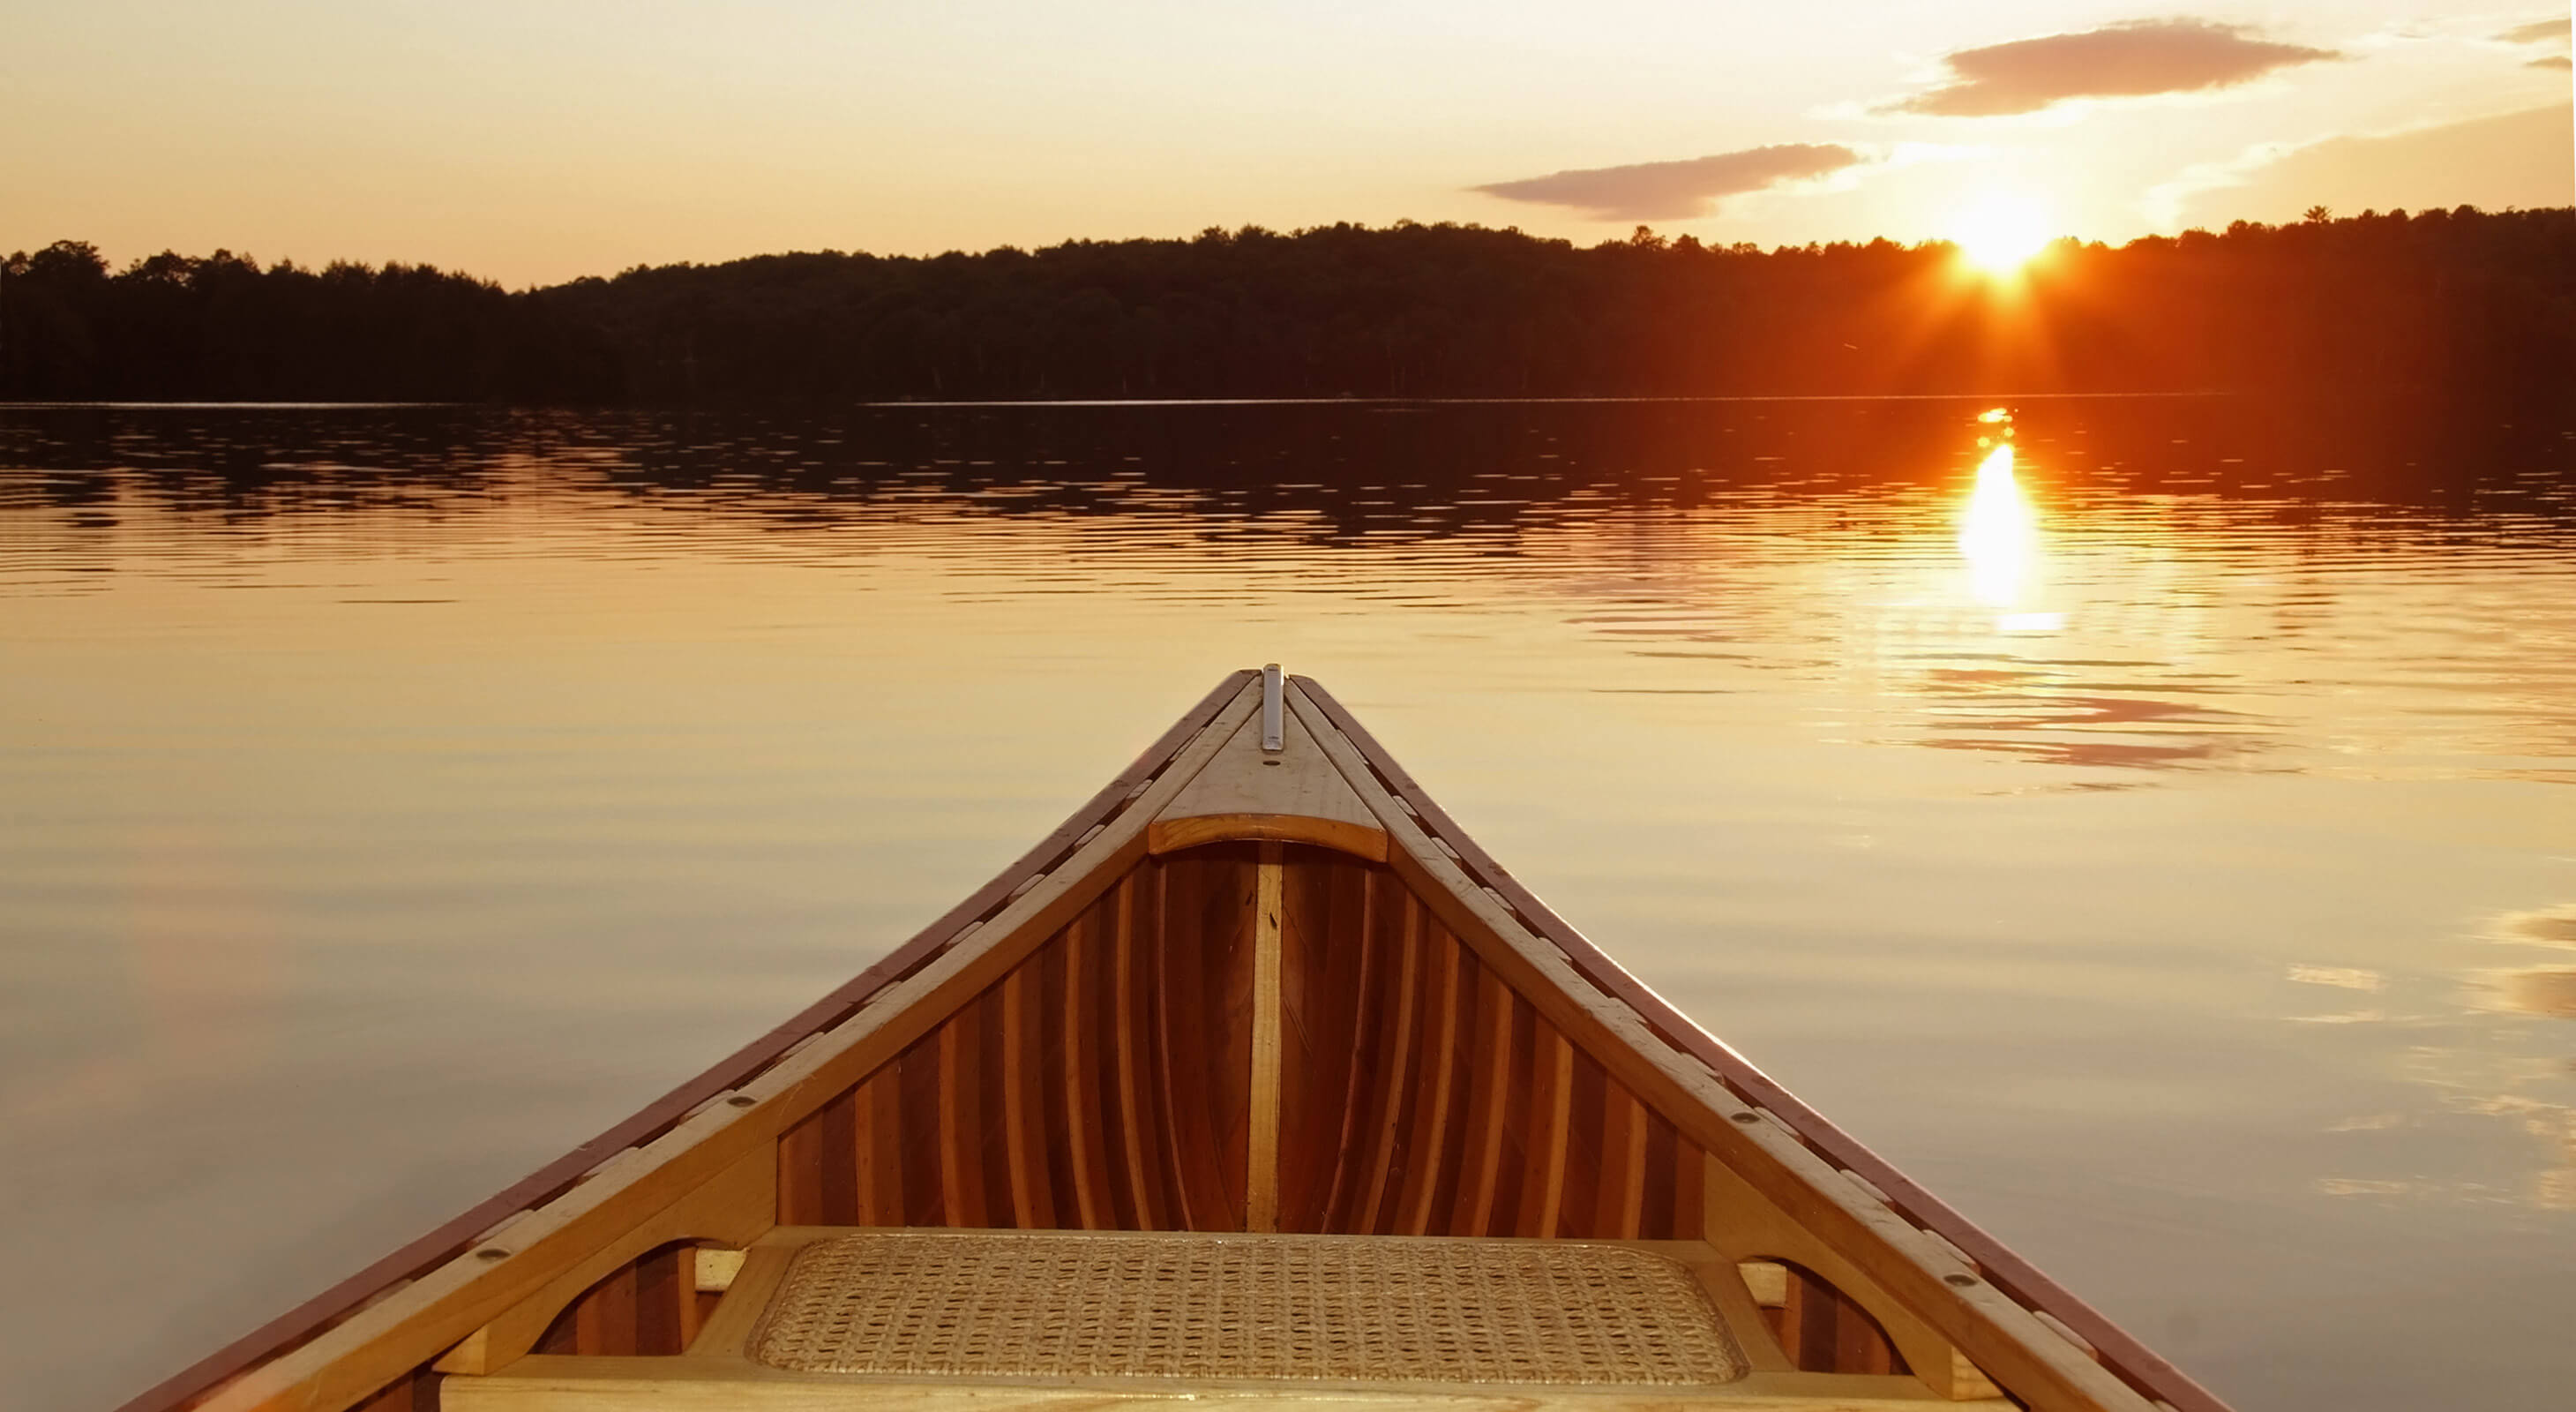 Canoe on water at sunset